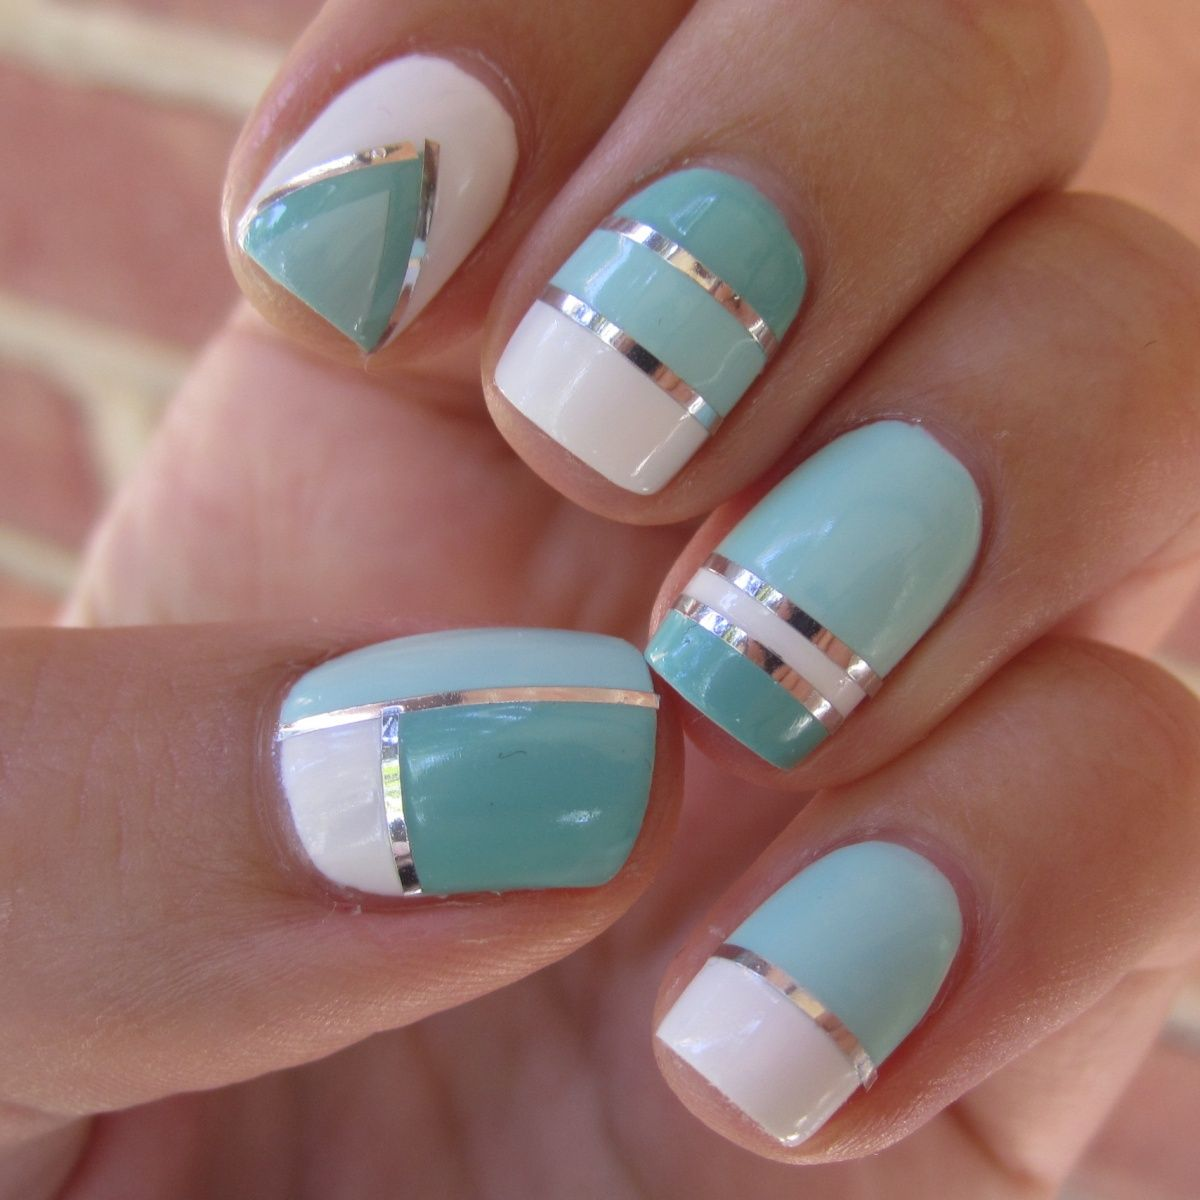 Simple Diy Nail Art Designs Wallpaper Nails Pinterest Simple